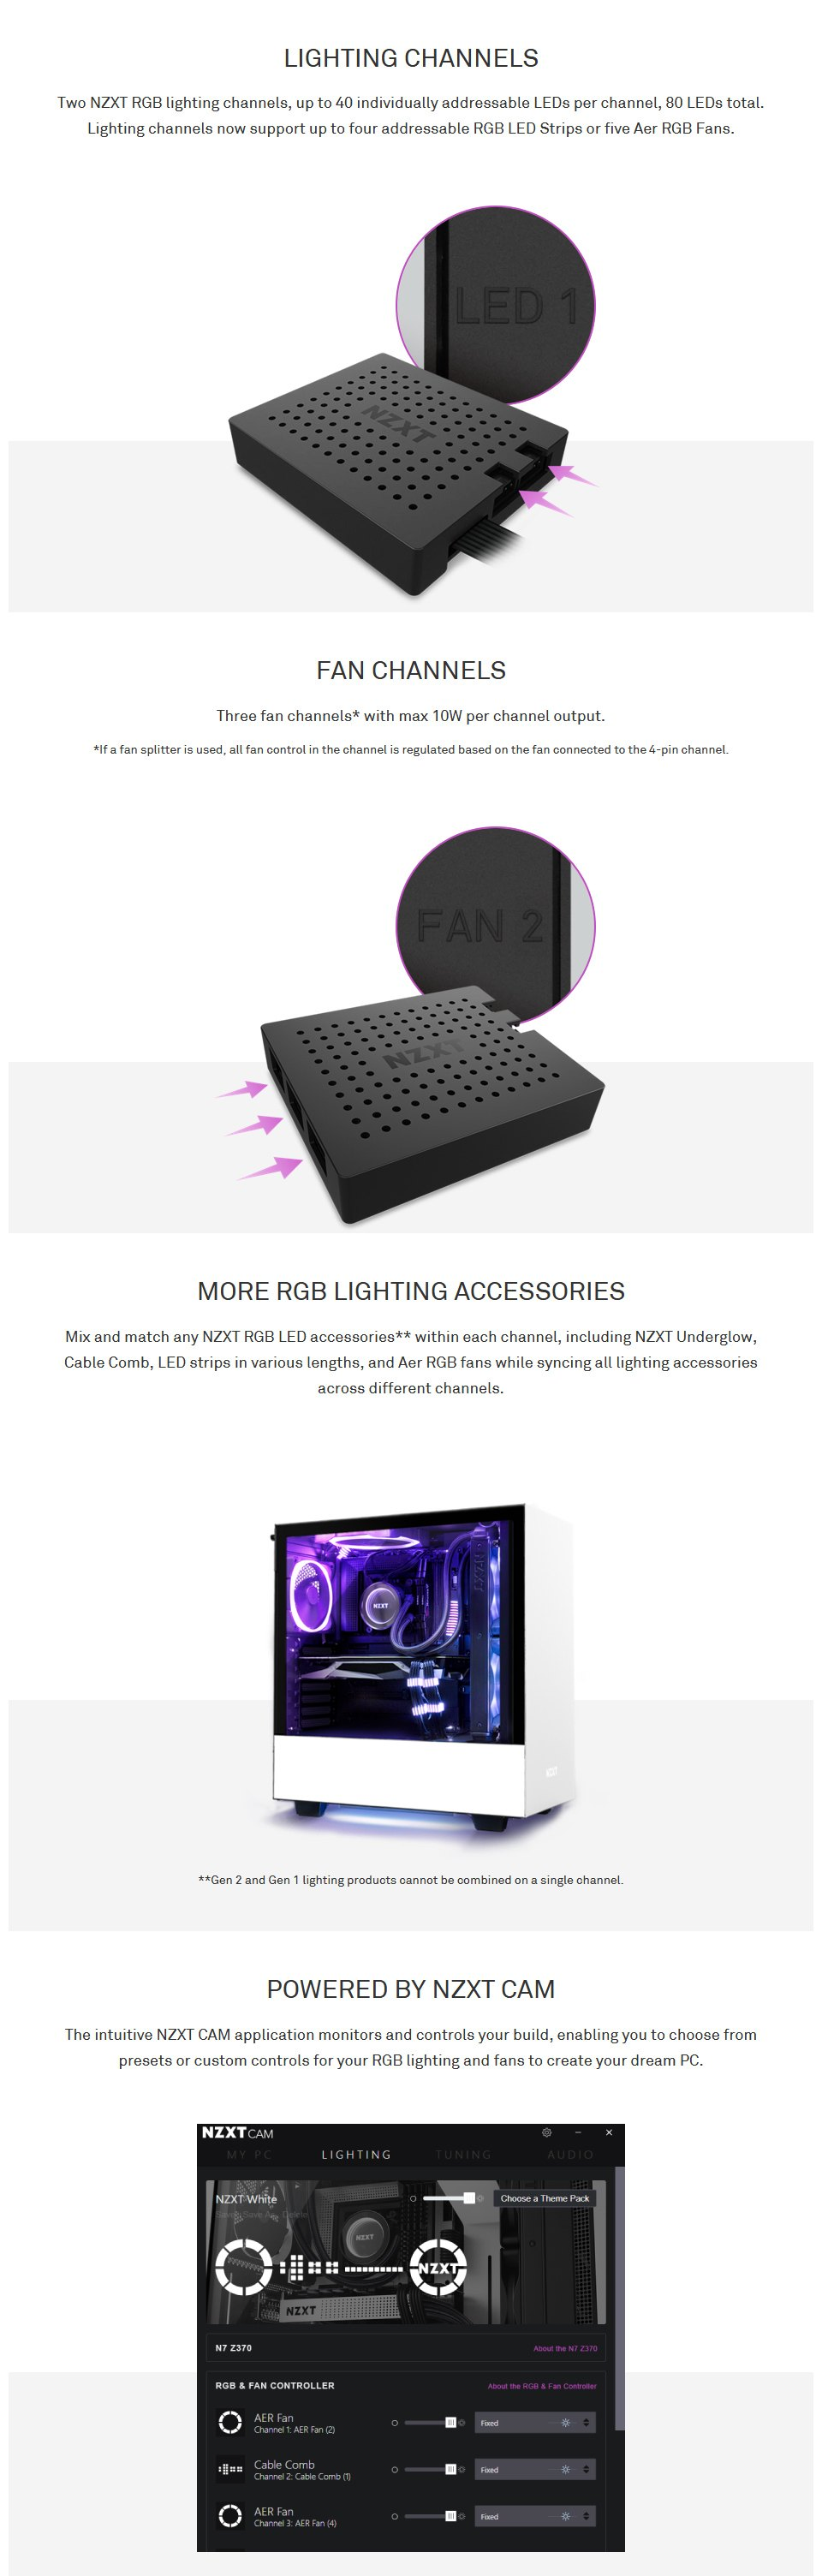 NZXT RGB and Fan Controller features